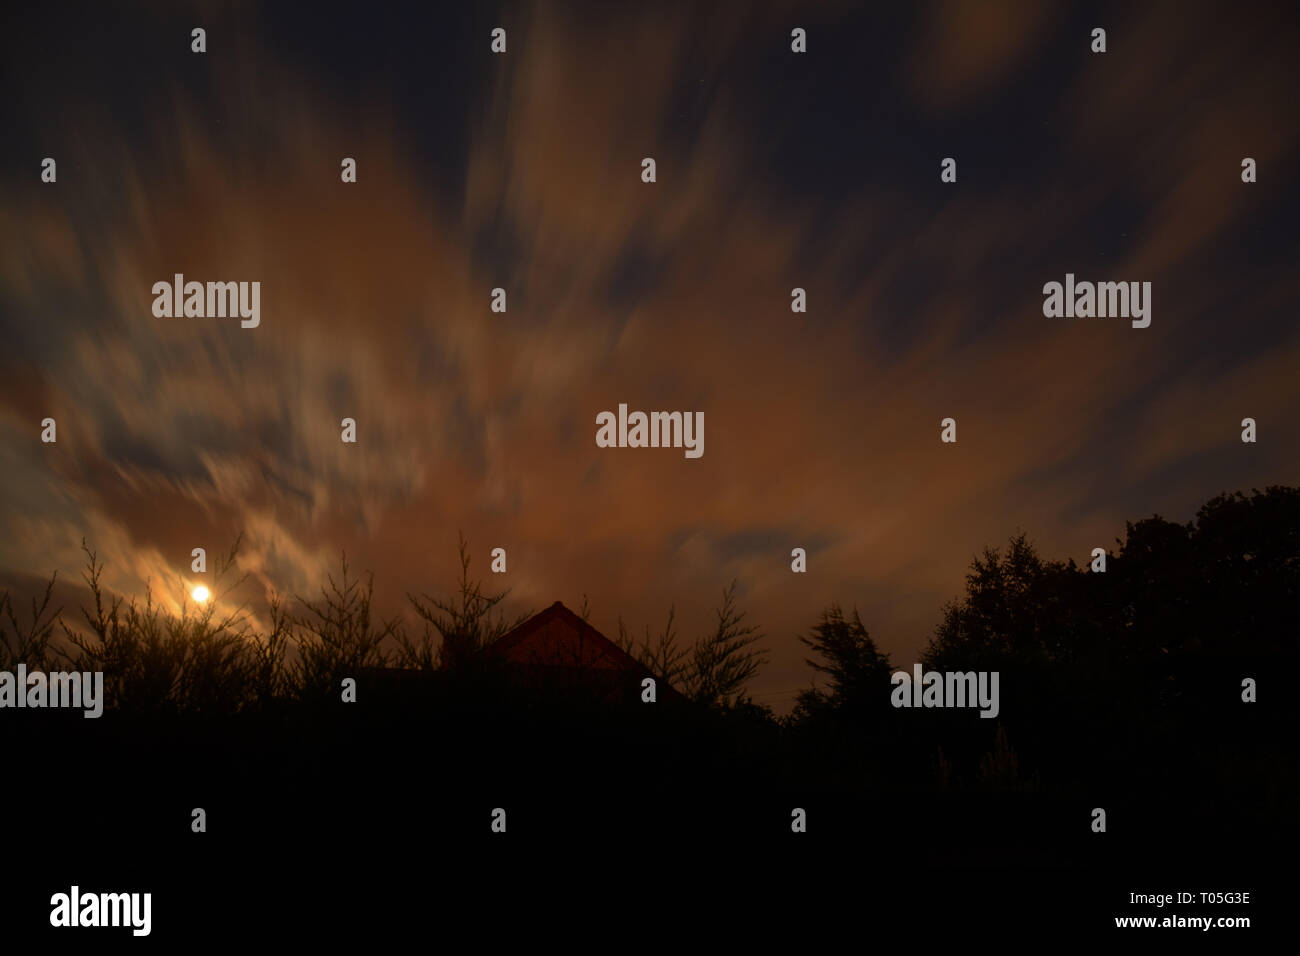 The blood moon illuminates the clouds in the late evening - Stock Image